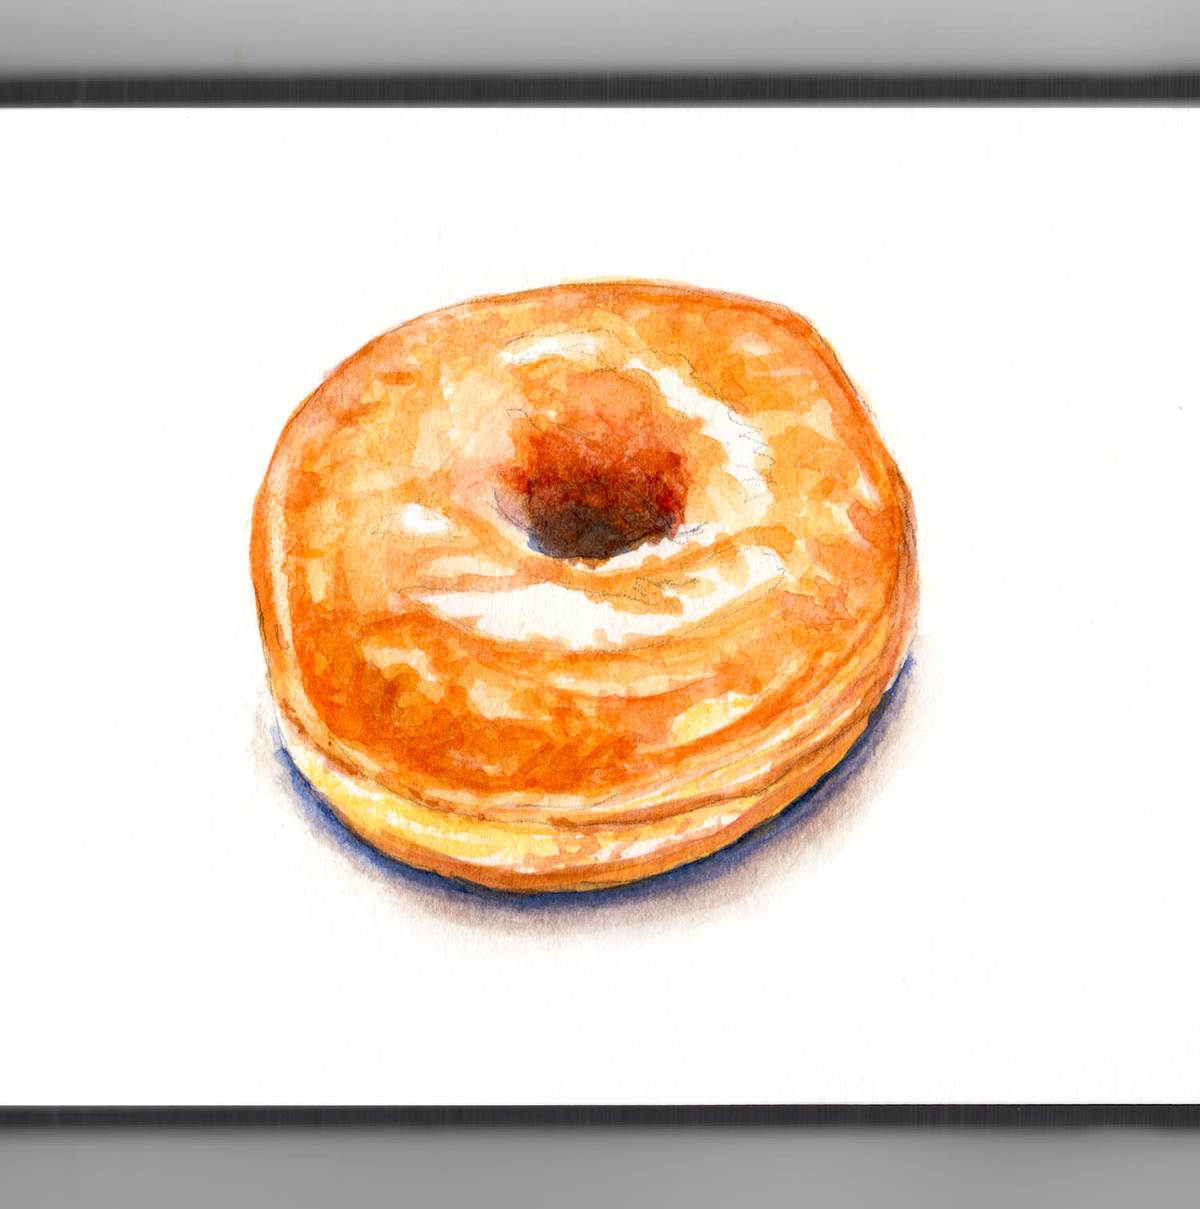 Day 30 - #WorldWatercolorGroup - A Simple Glazed Donut Watercolor - #doodlewash